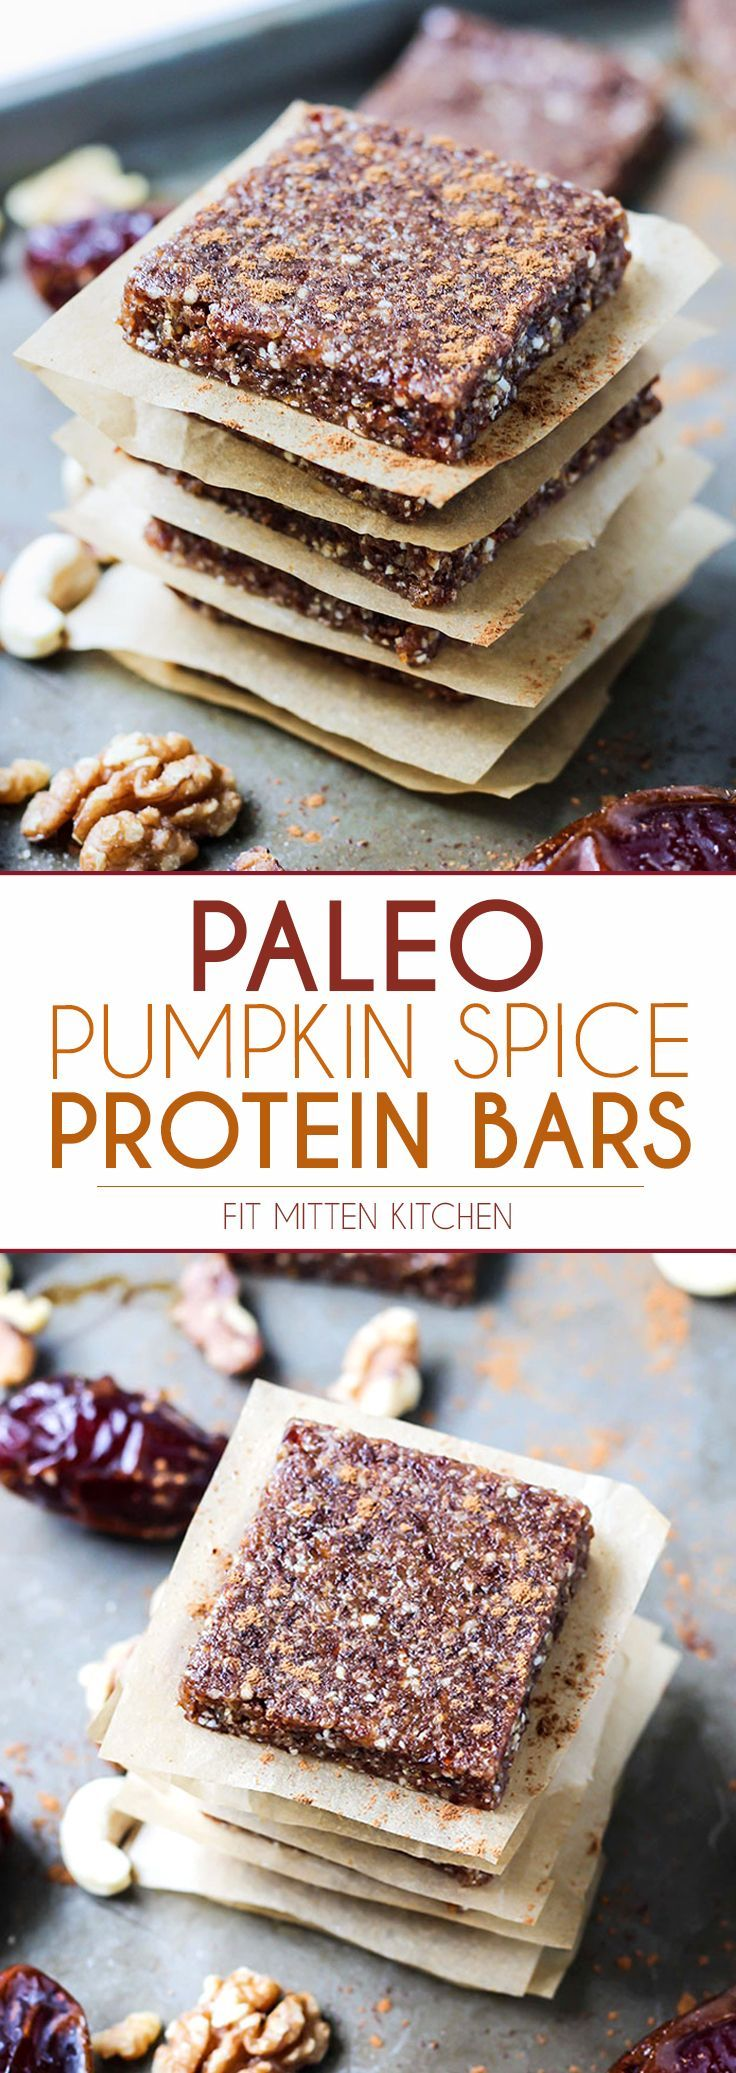 Simple bars FTW!   Pumpkin Spice Paleo Protein Bars use a simple blend of dates, nuts, and loads of pumpkin pie spice and cinnamon for extra flavor. Using collagen for protein plus added health benefits!